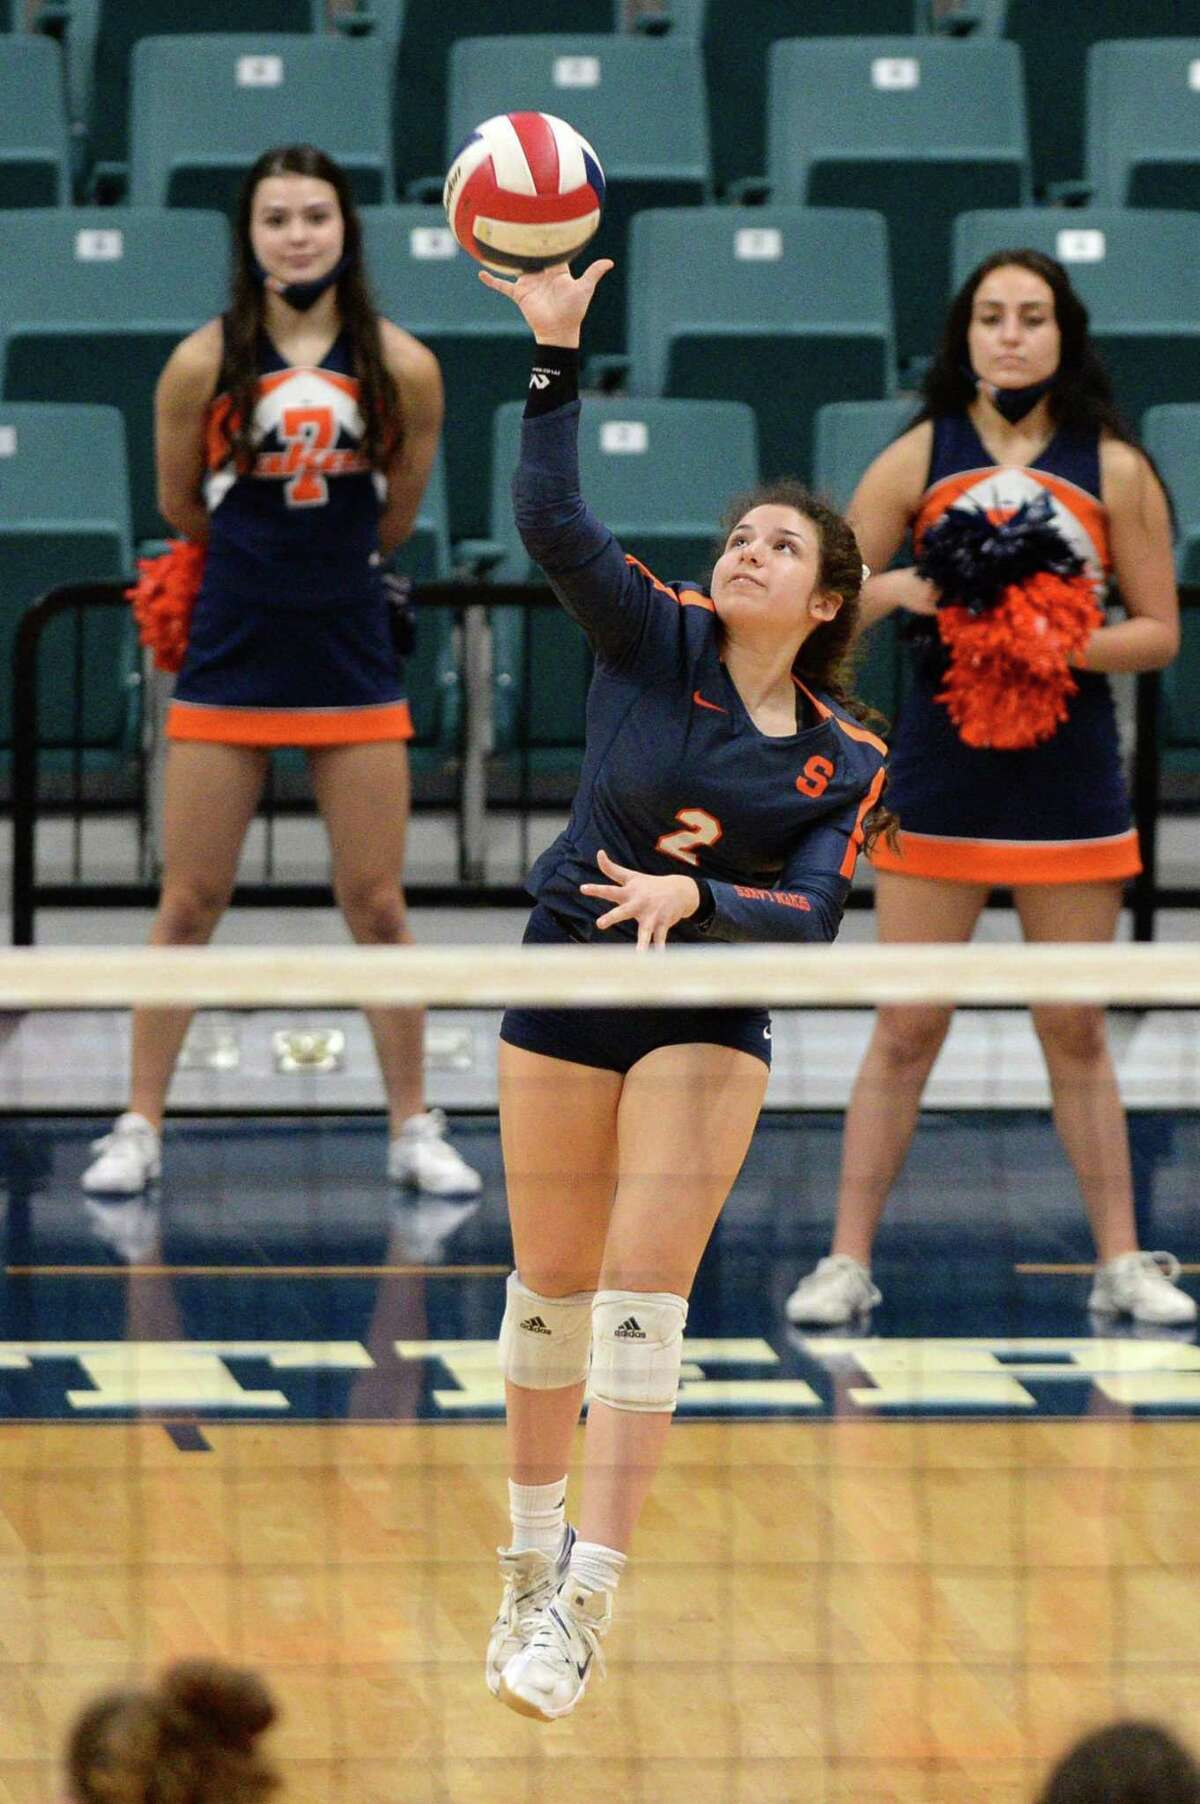 Grace Lanier (2) of Seven Lakes serves during the fourth set of a 6A-III regional quarterfinal game between the Cinco Ranch Cougars and the Seven Lakes Spartans on Saturday, November 28, 2020 at Leonard Merrell Center, Katy, TX.